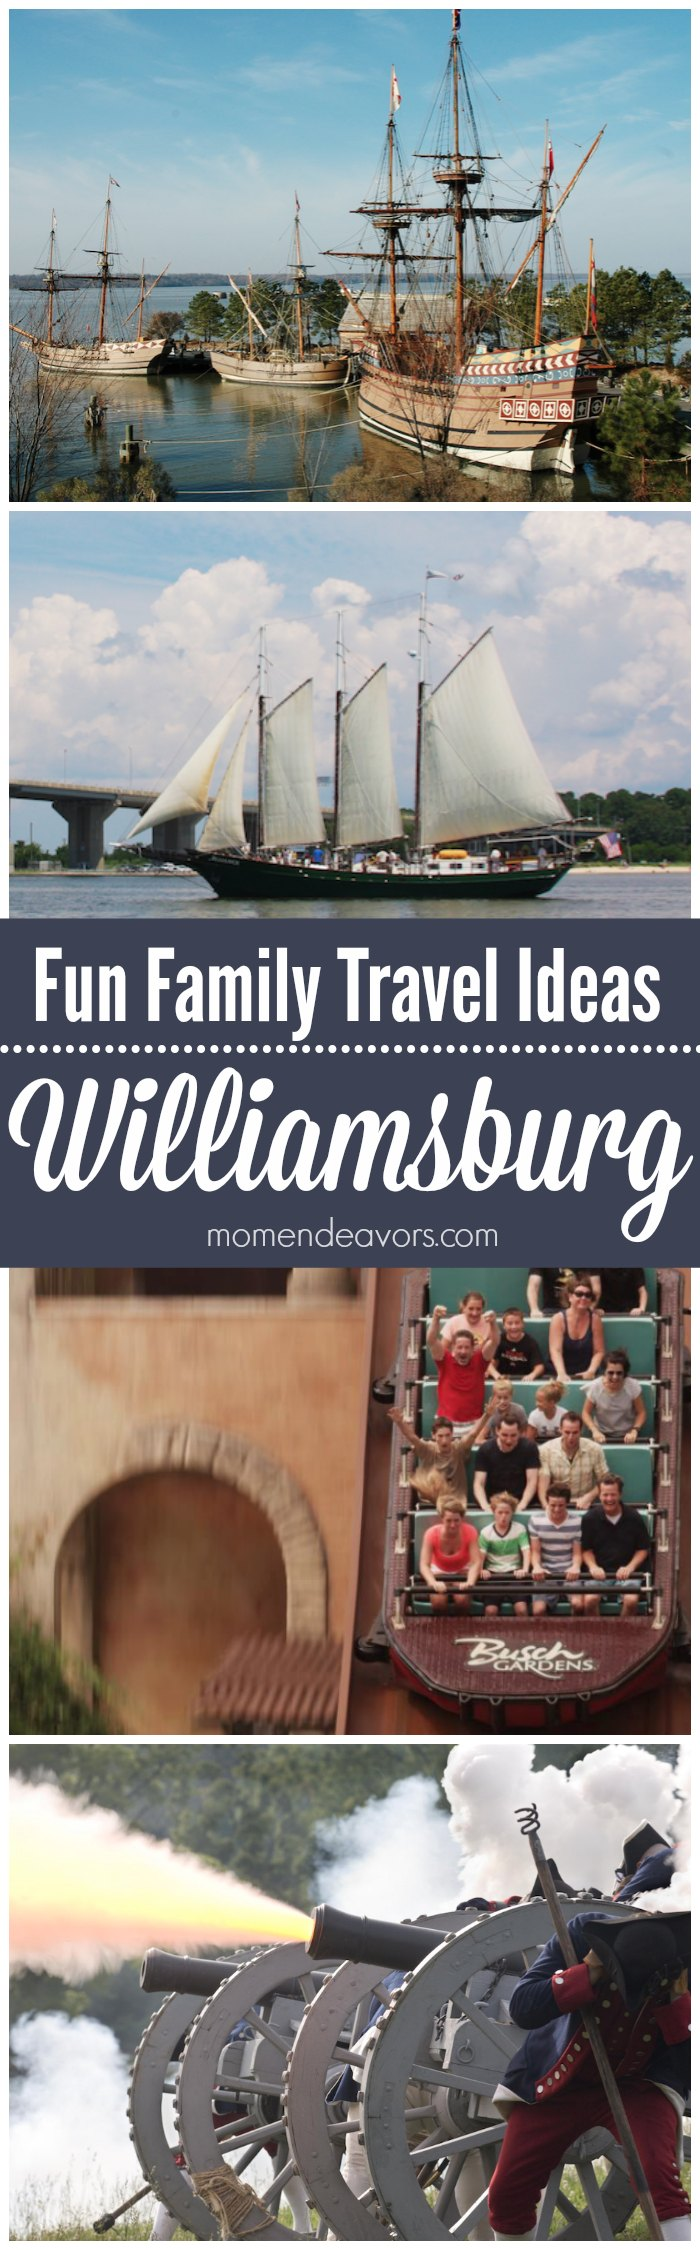 Williamsburg Fun Family Travel Ideas